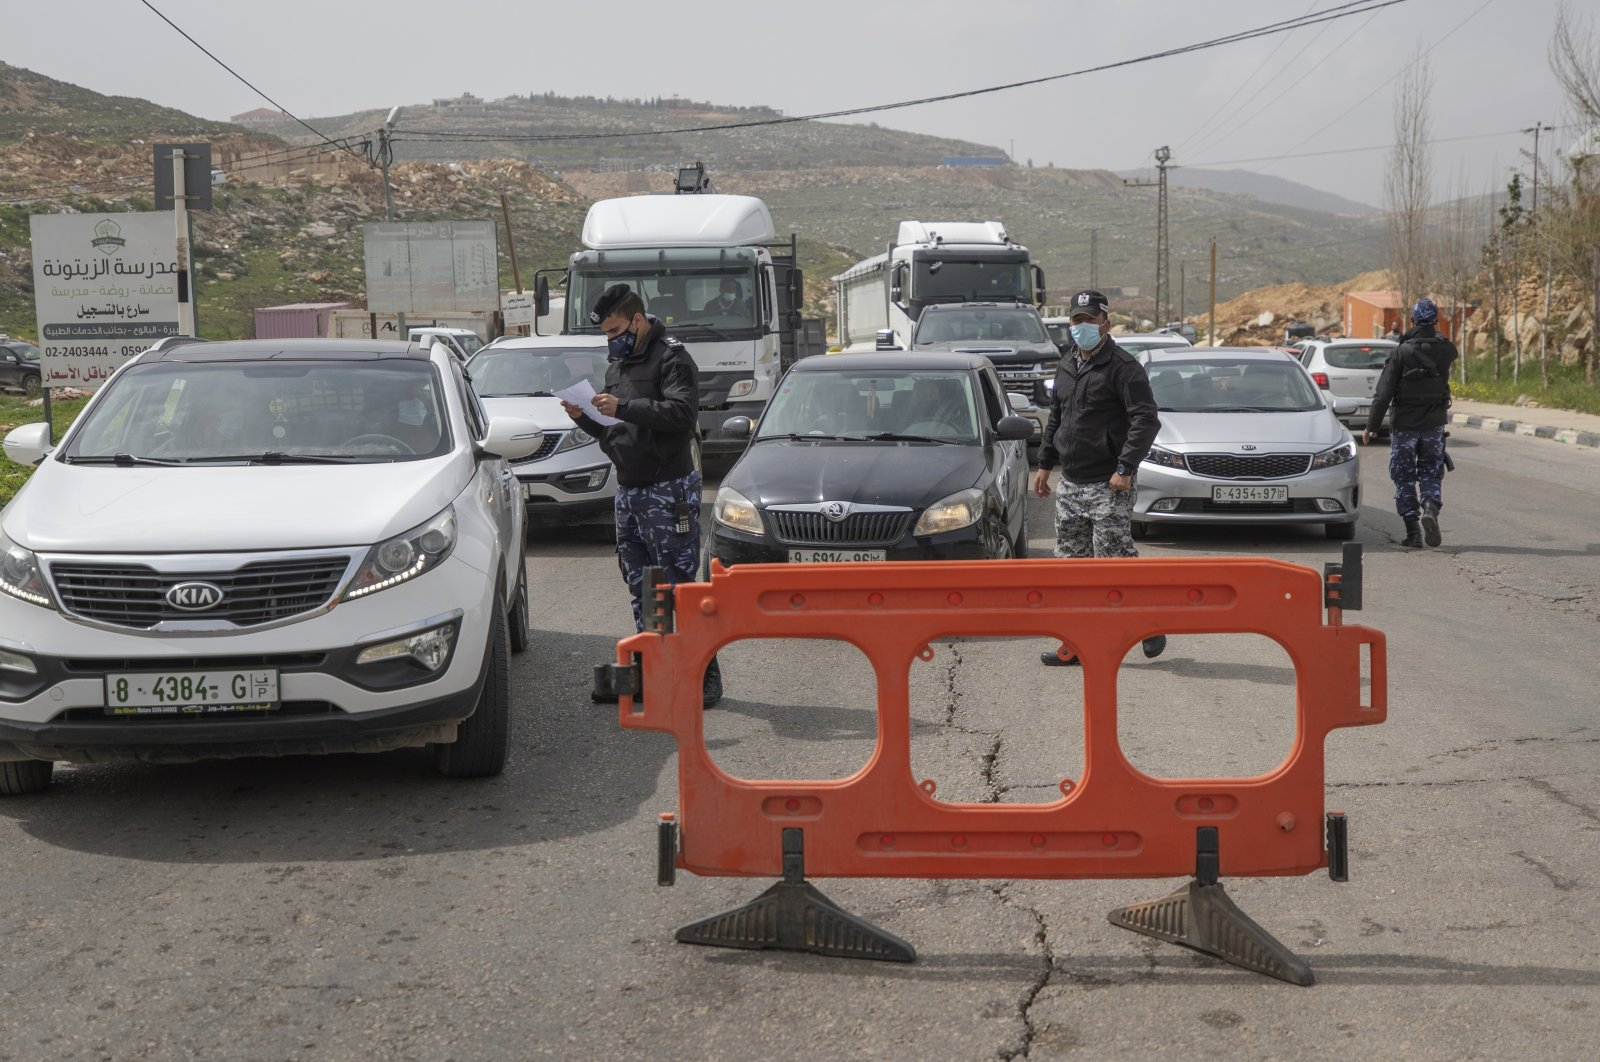 Palestinian security forces stop vehicles as part of a lockdown and quarantine measures at an entrance of the West Bank city of Ramallah, March 11, 2021. (AP Photo)